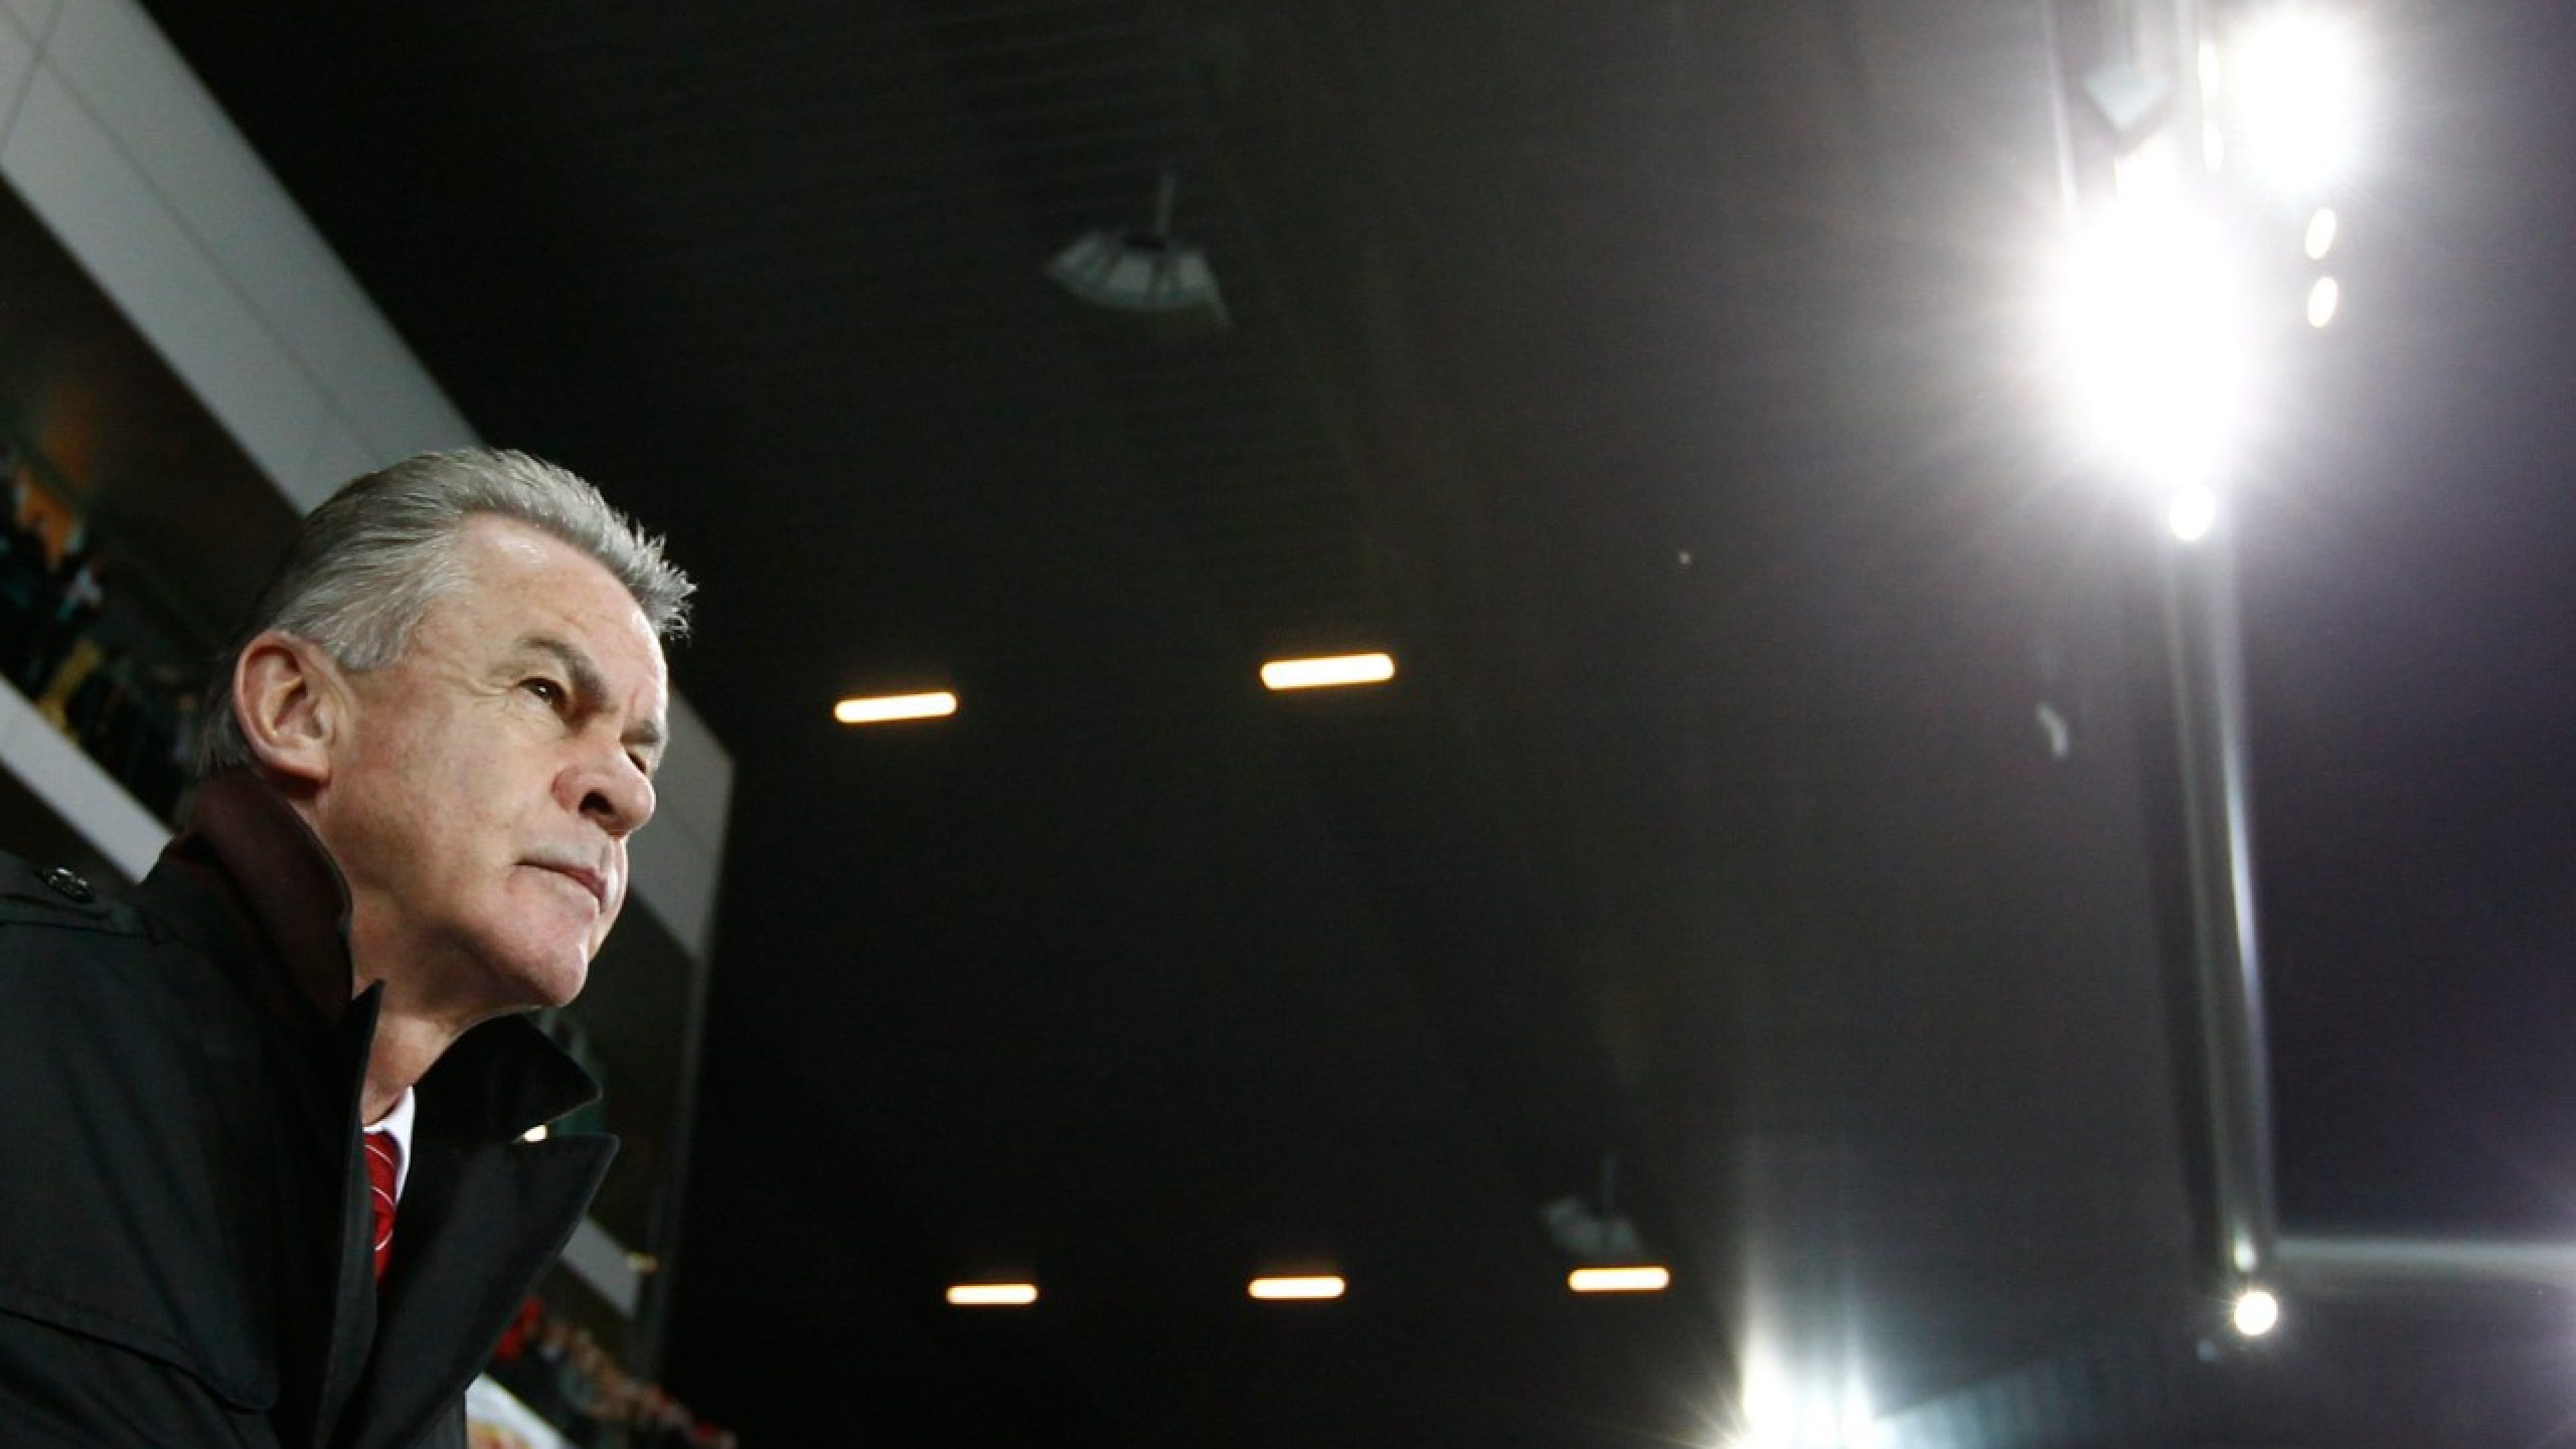 Swiss head coach Ottmar Hitzfeld from Germany looks on prior to the FIFA World Cup 2012 group E qualifying soccer match between Switzerland and Norway at the Stade de Suisse stadium, in Bern, Switzerland, Friday, October 12, 2012. (KEYSTONE/Peter Klaunzer)